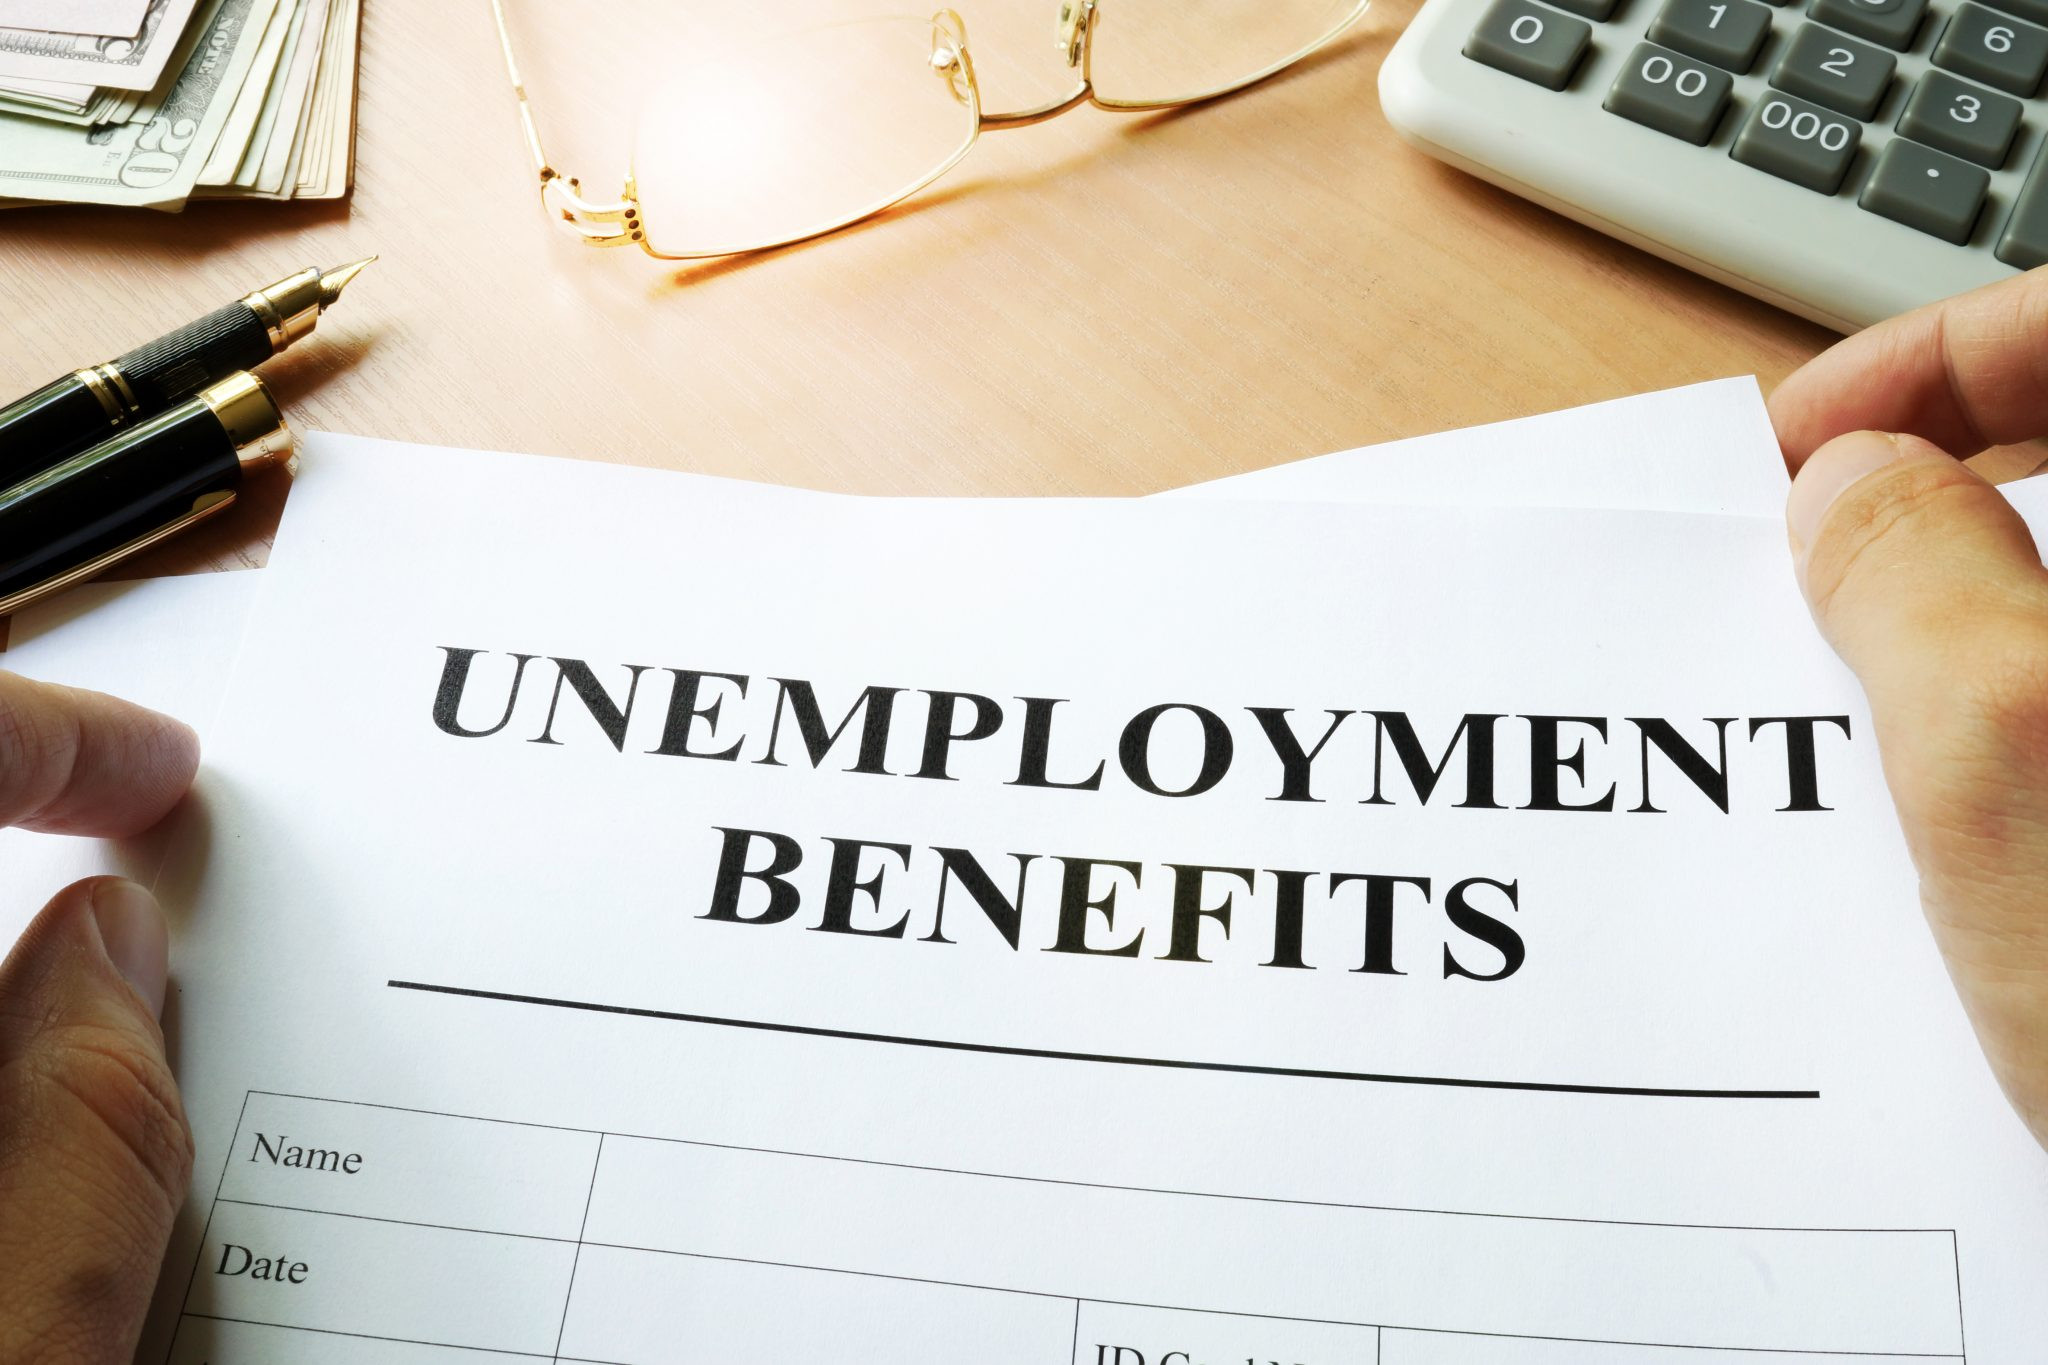 Unemployment benefits form on a table.